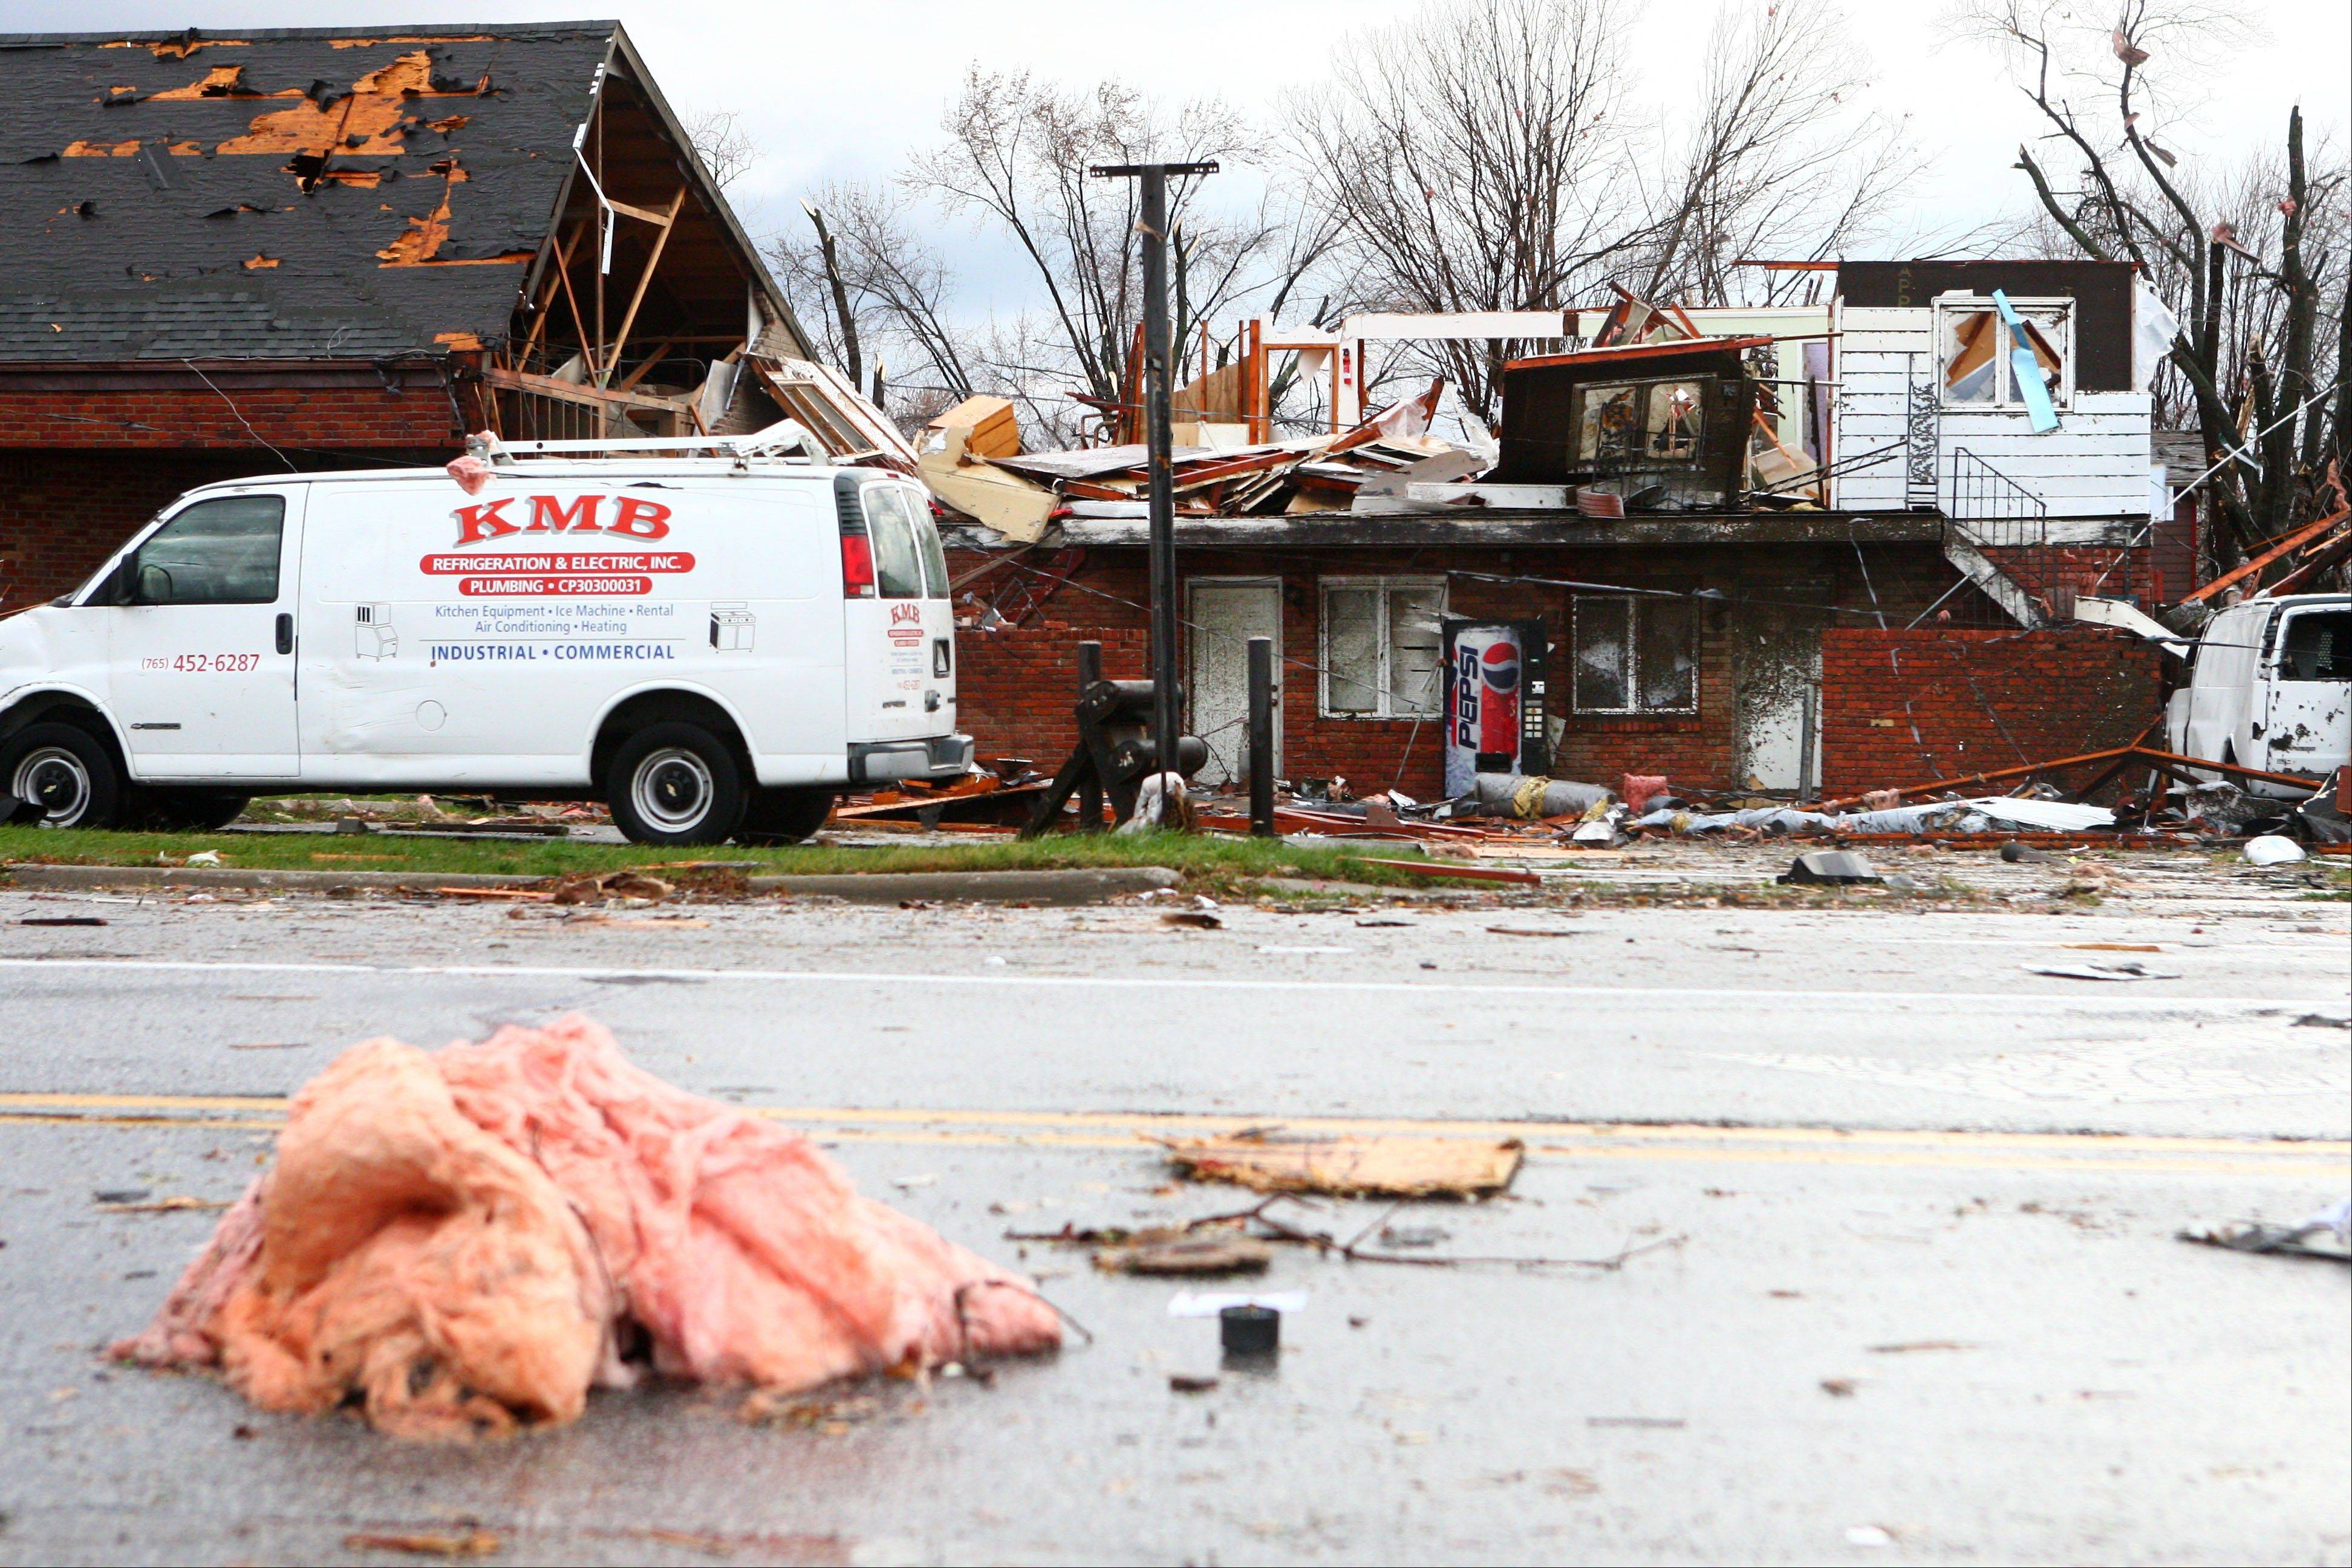 Severe storms caused damage to businesses along Hoffer Street in Kokomo, Ind., on Sunday, Nov. 17, 2013.